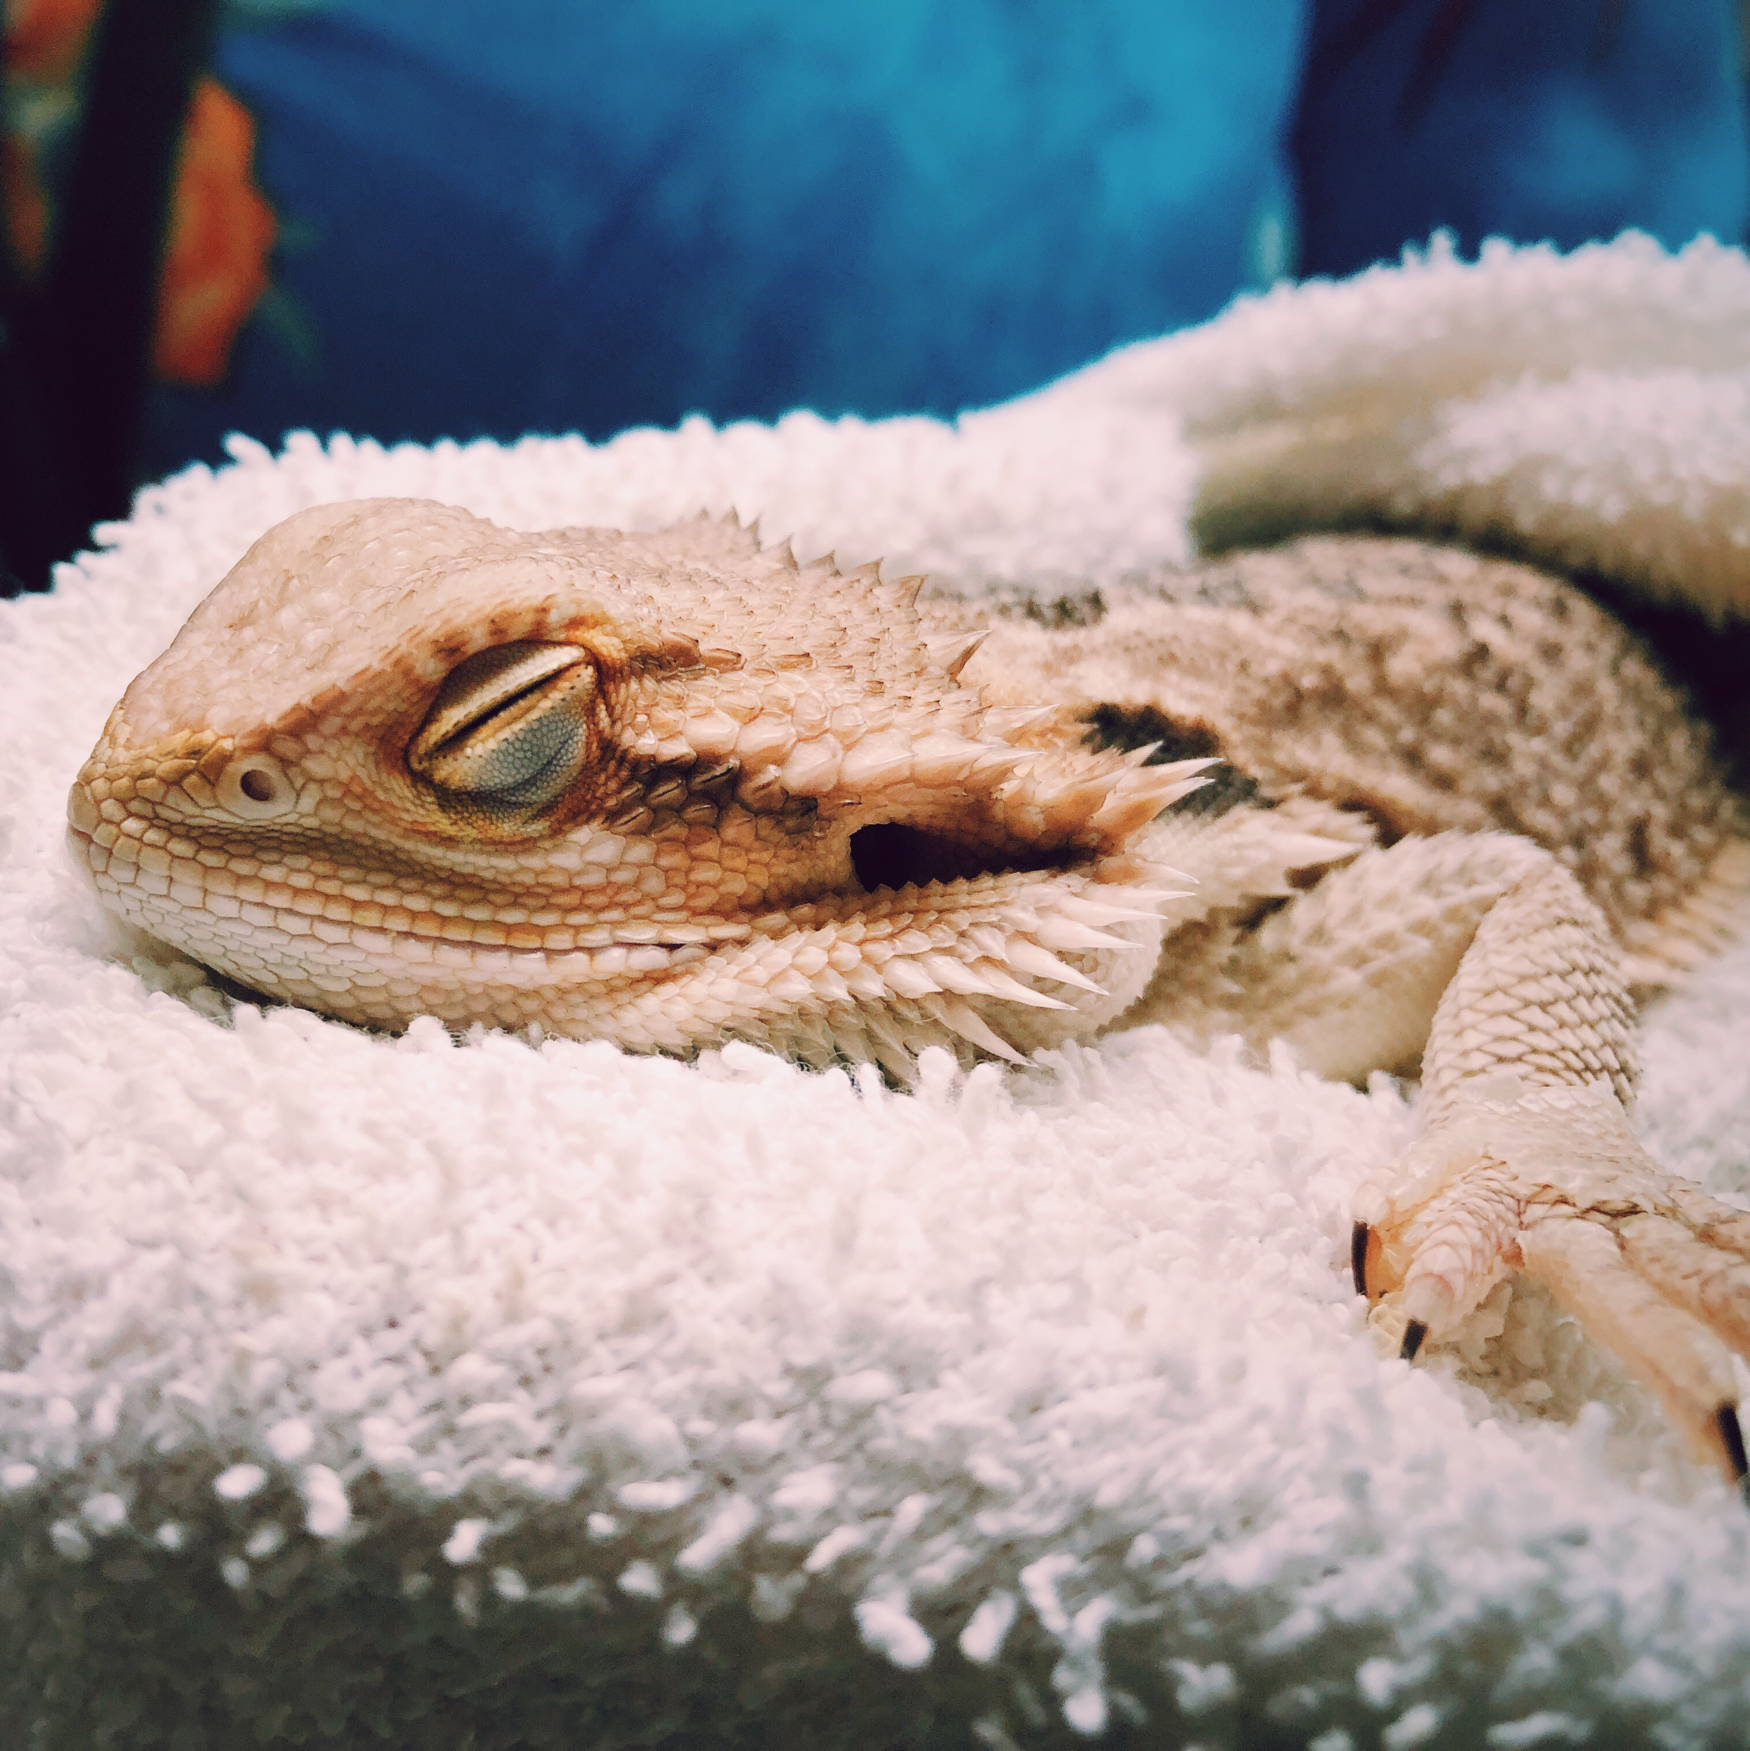 Khaleesi catching some zzz's between classes. Being pampered and held all day is hard work.